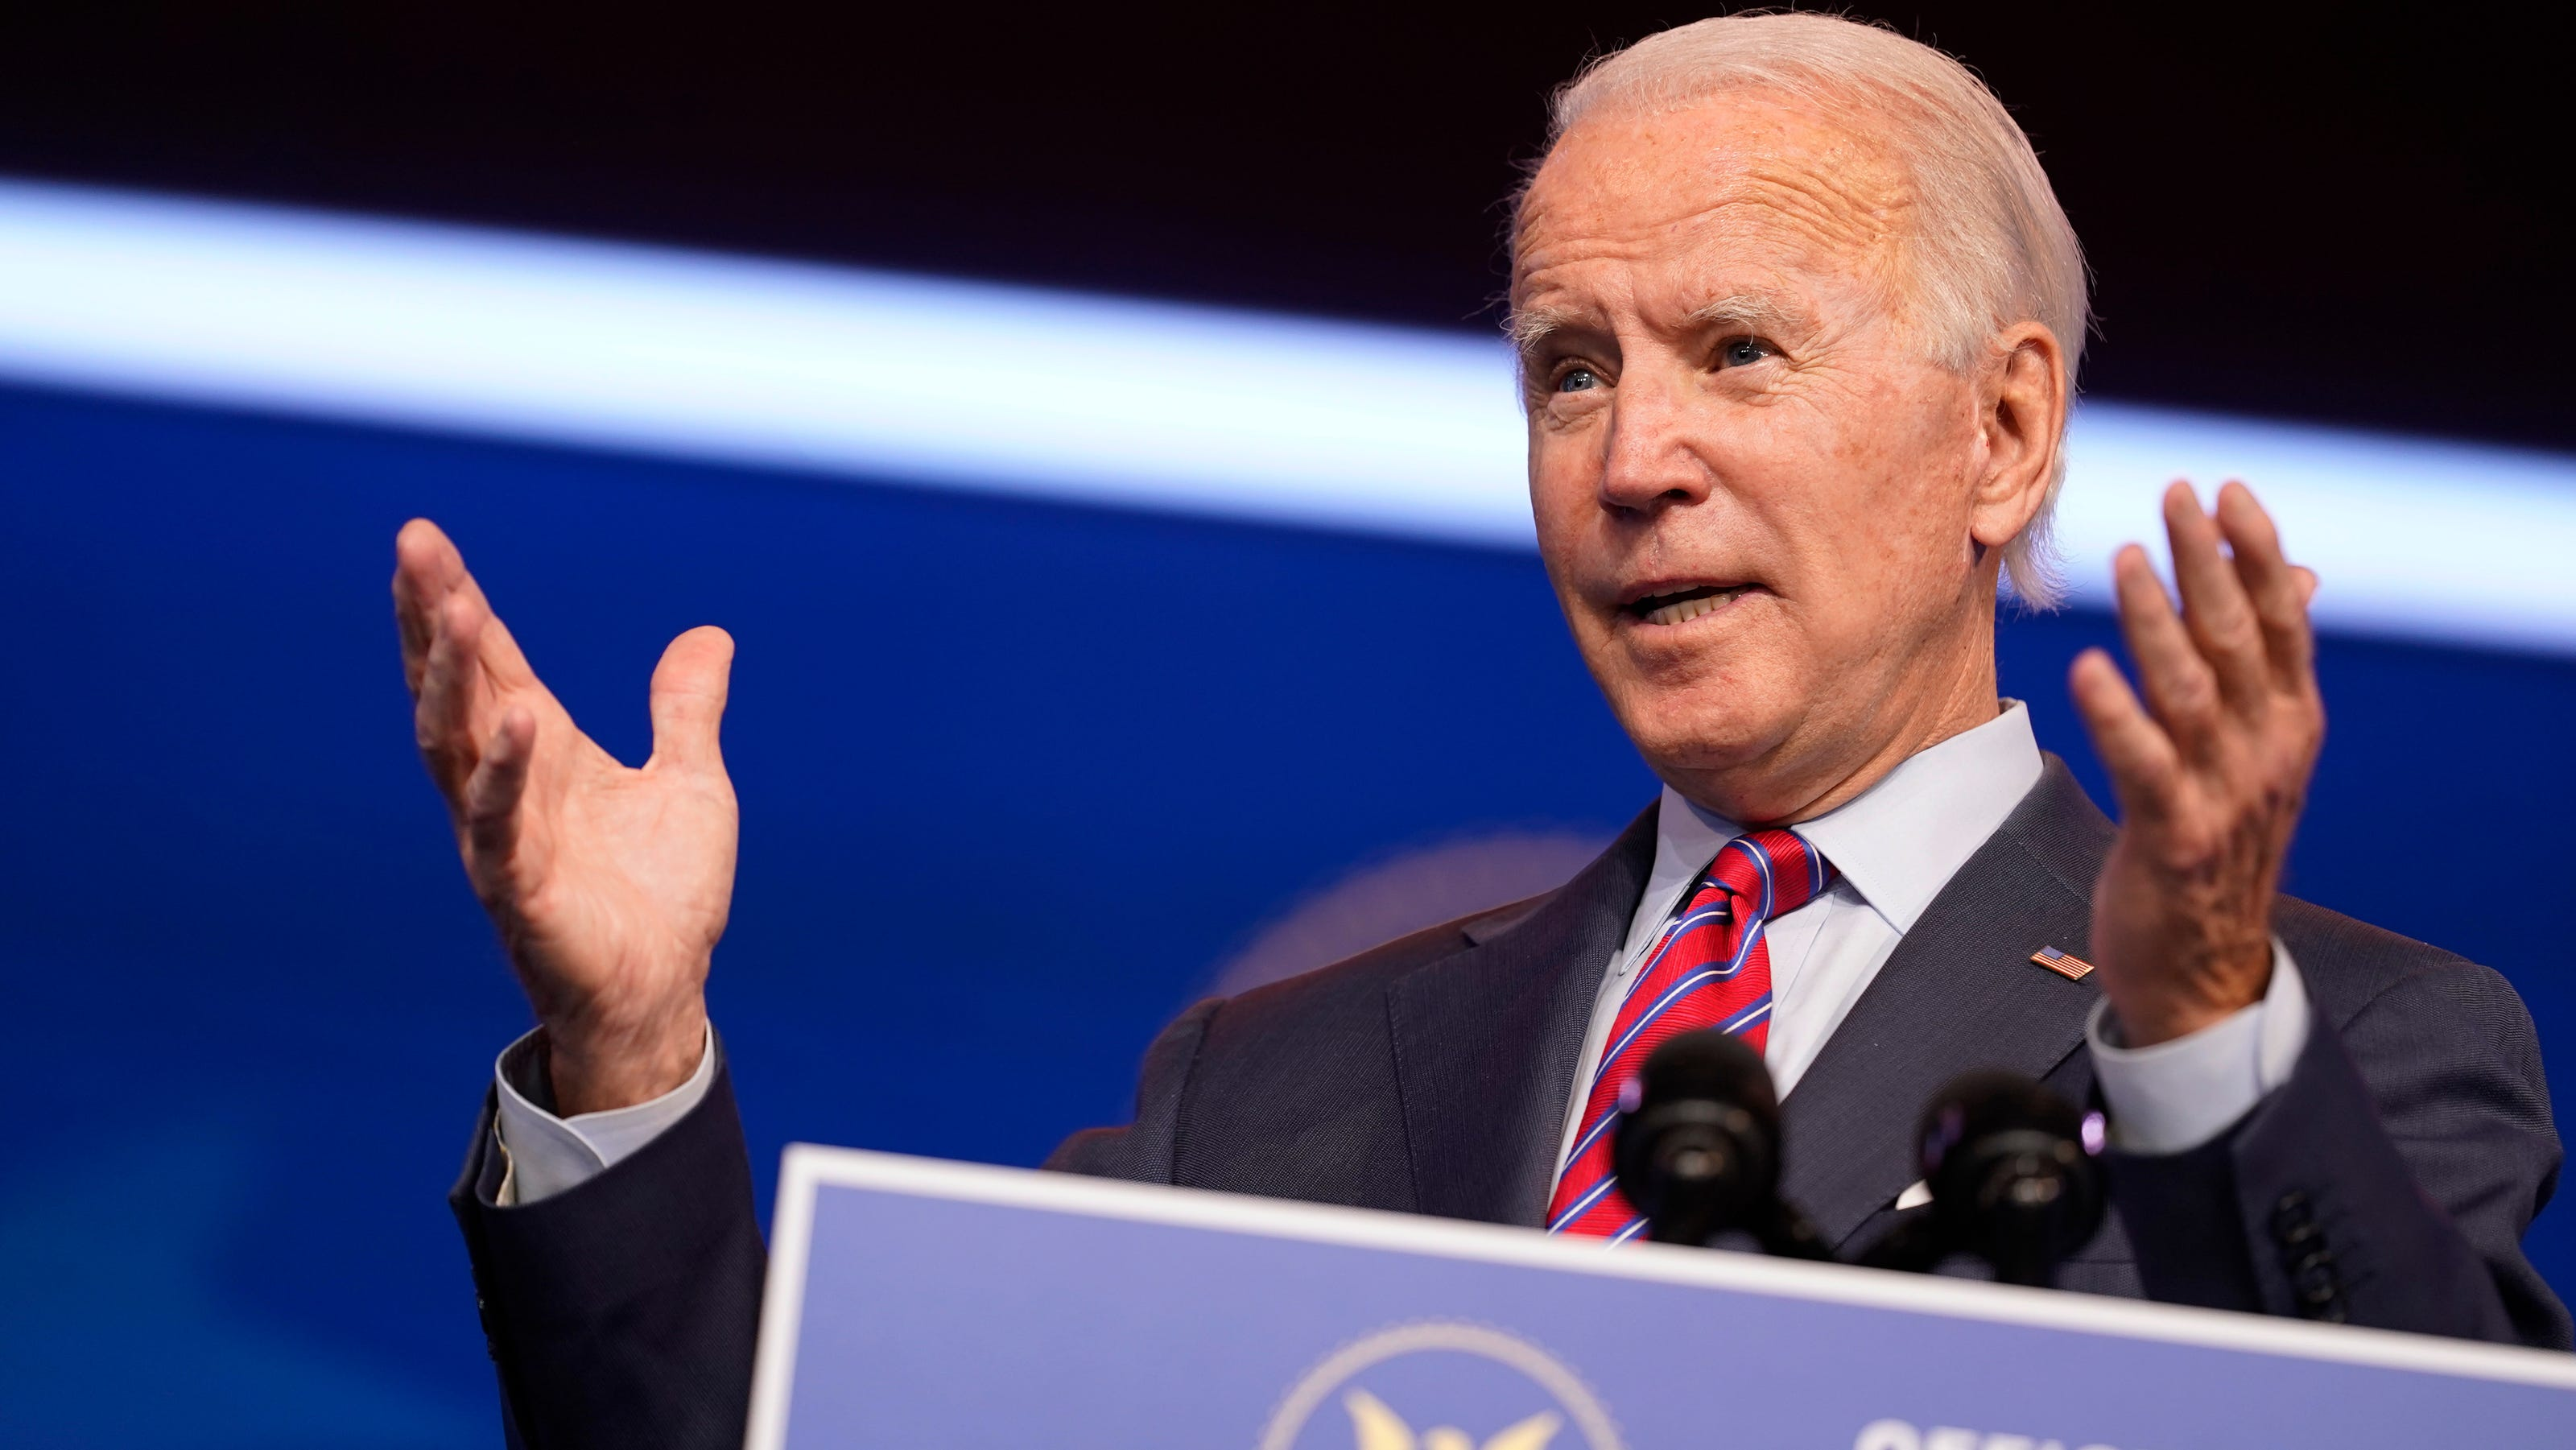 Fact check: False news report indicates Biden plans to step down as president-elect